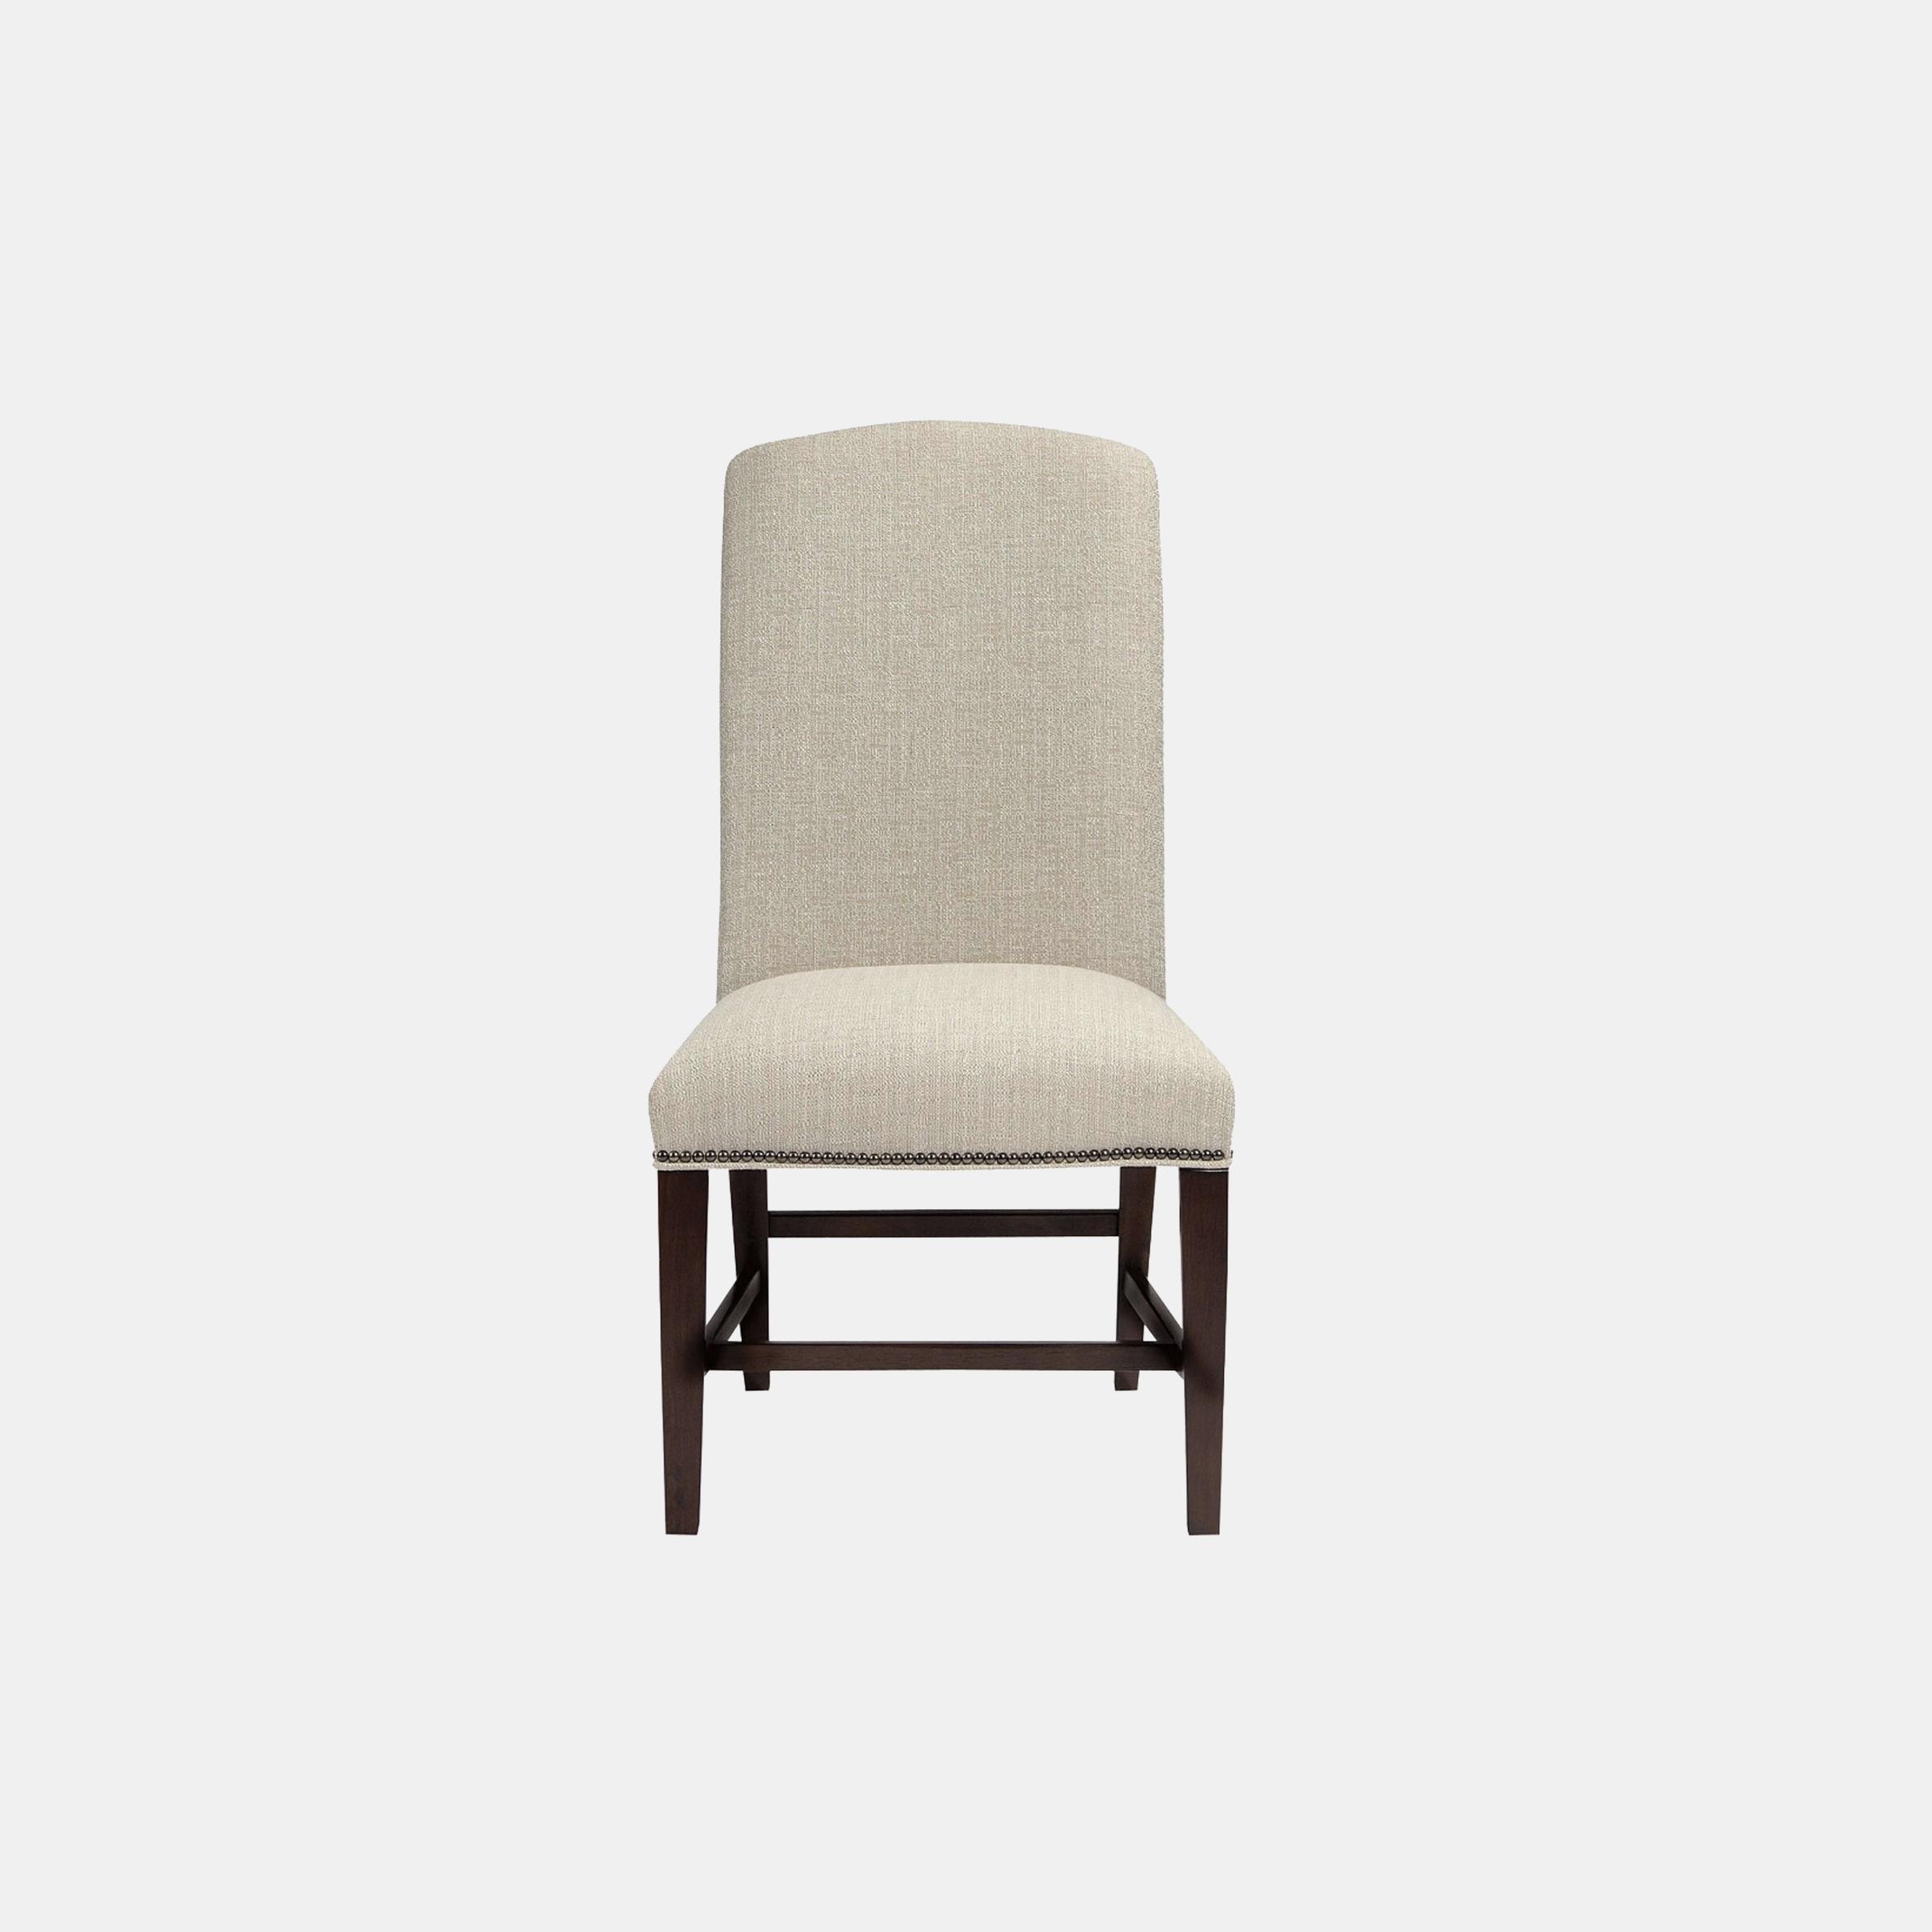 "Hadden Side Chair  22-3/4""w x 27-1/8""d x 42-1/8""h Also available as arm chair. SKU0724BHT"